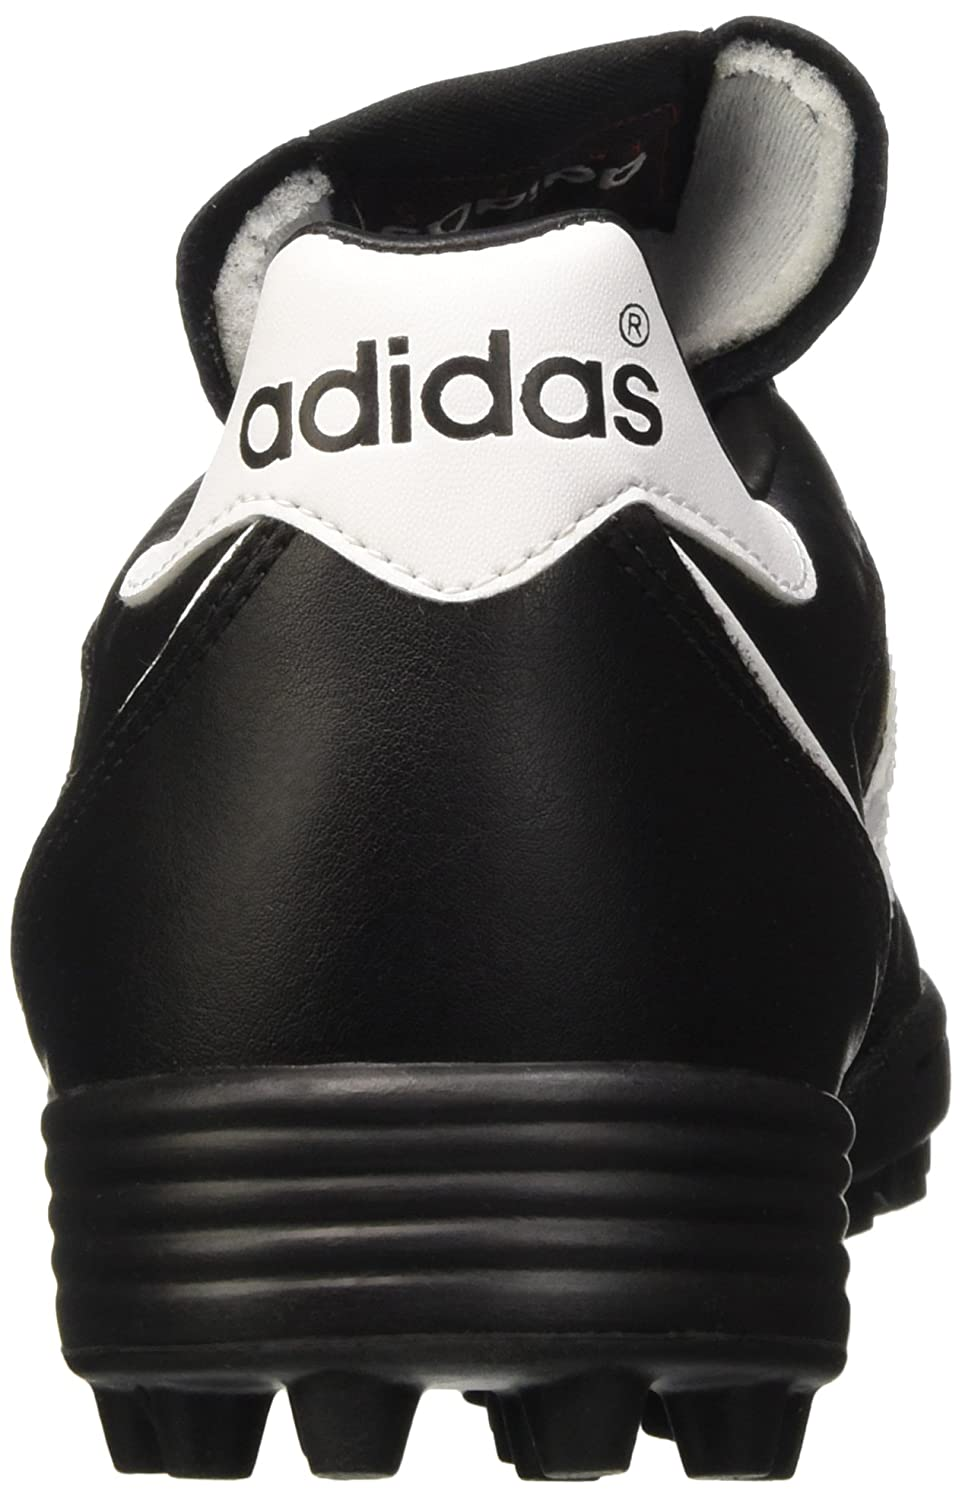 factory price a09c9 92f35 adidas Kaiser 5 Team, Men s Football Boots  Amazon.co.uk  Shoes   Bags